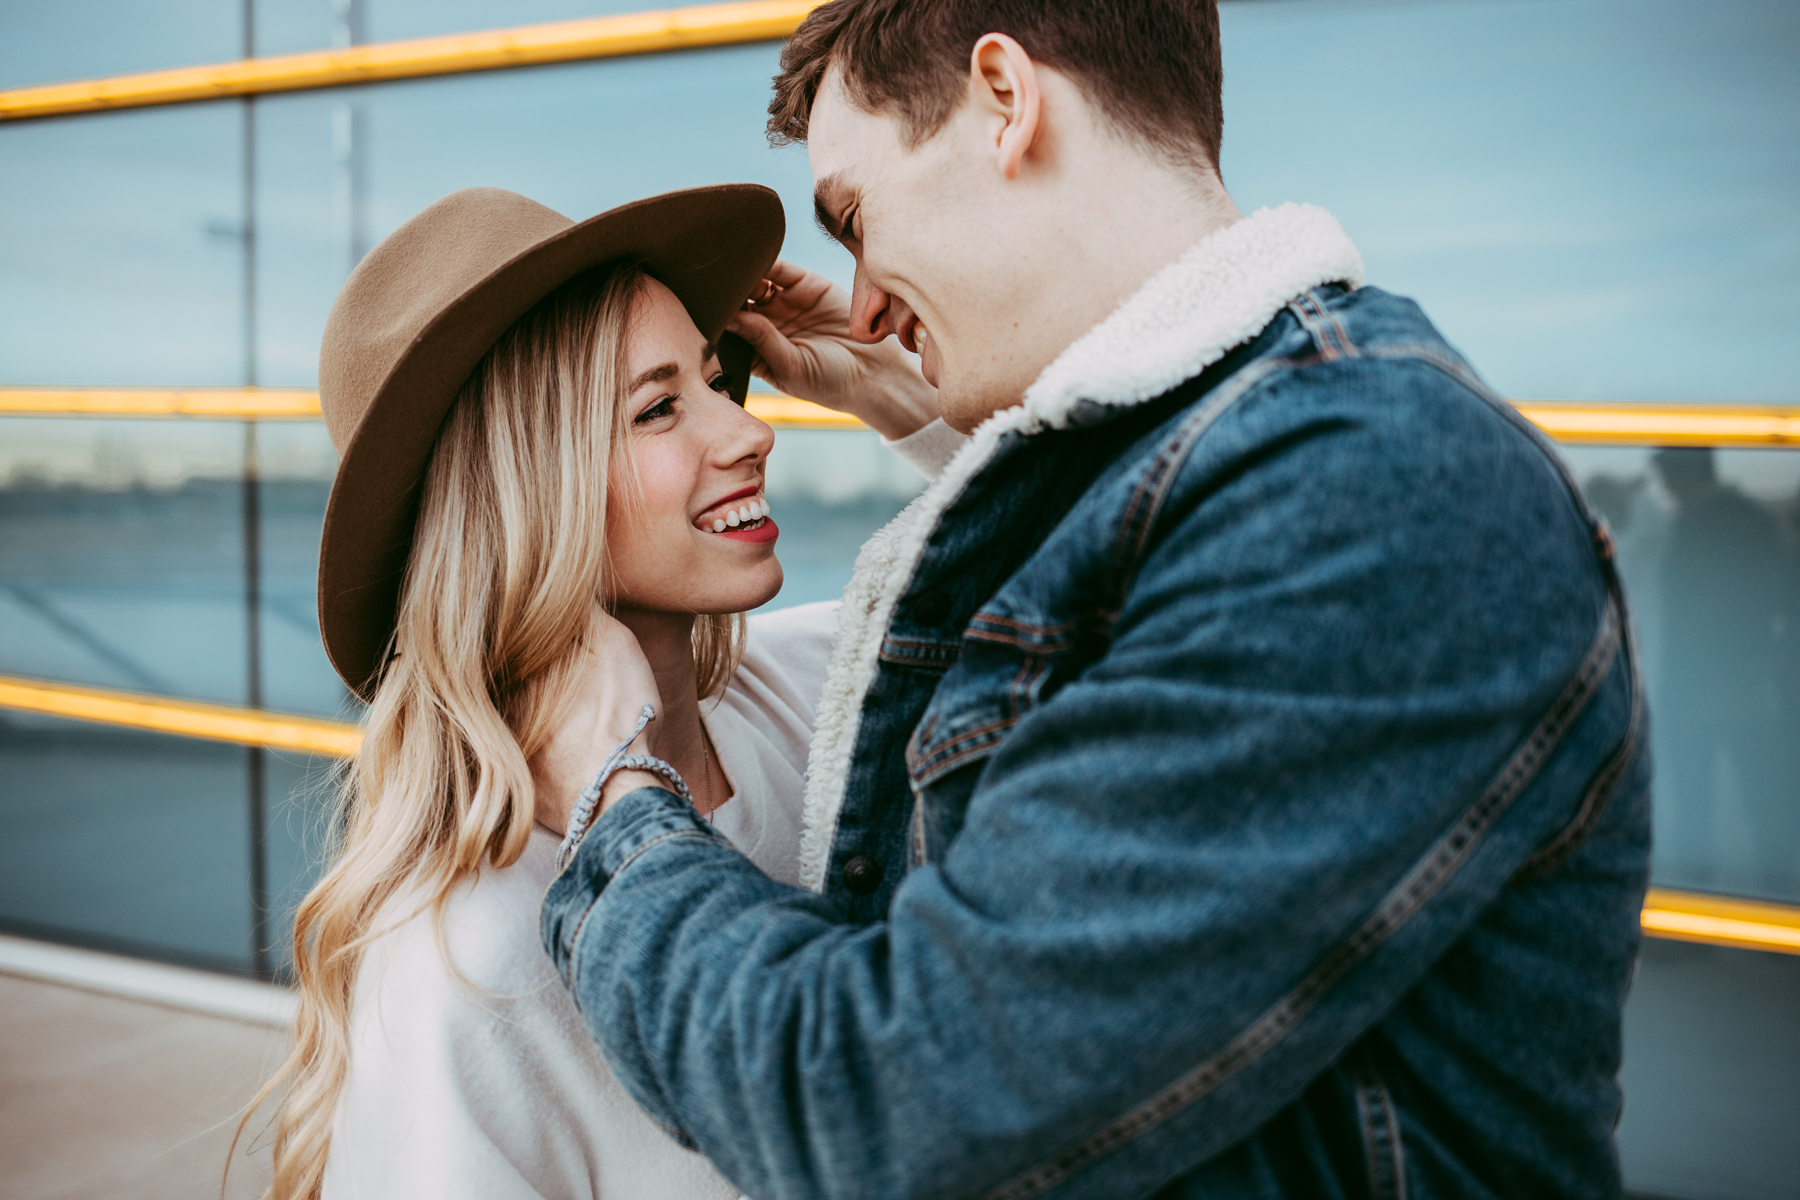 Romantic couple photoshoot at the boathouse district in Oklahoma City by Amanda Lynn.